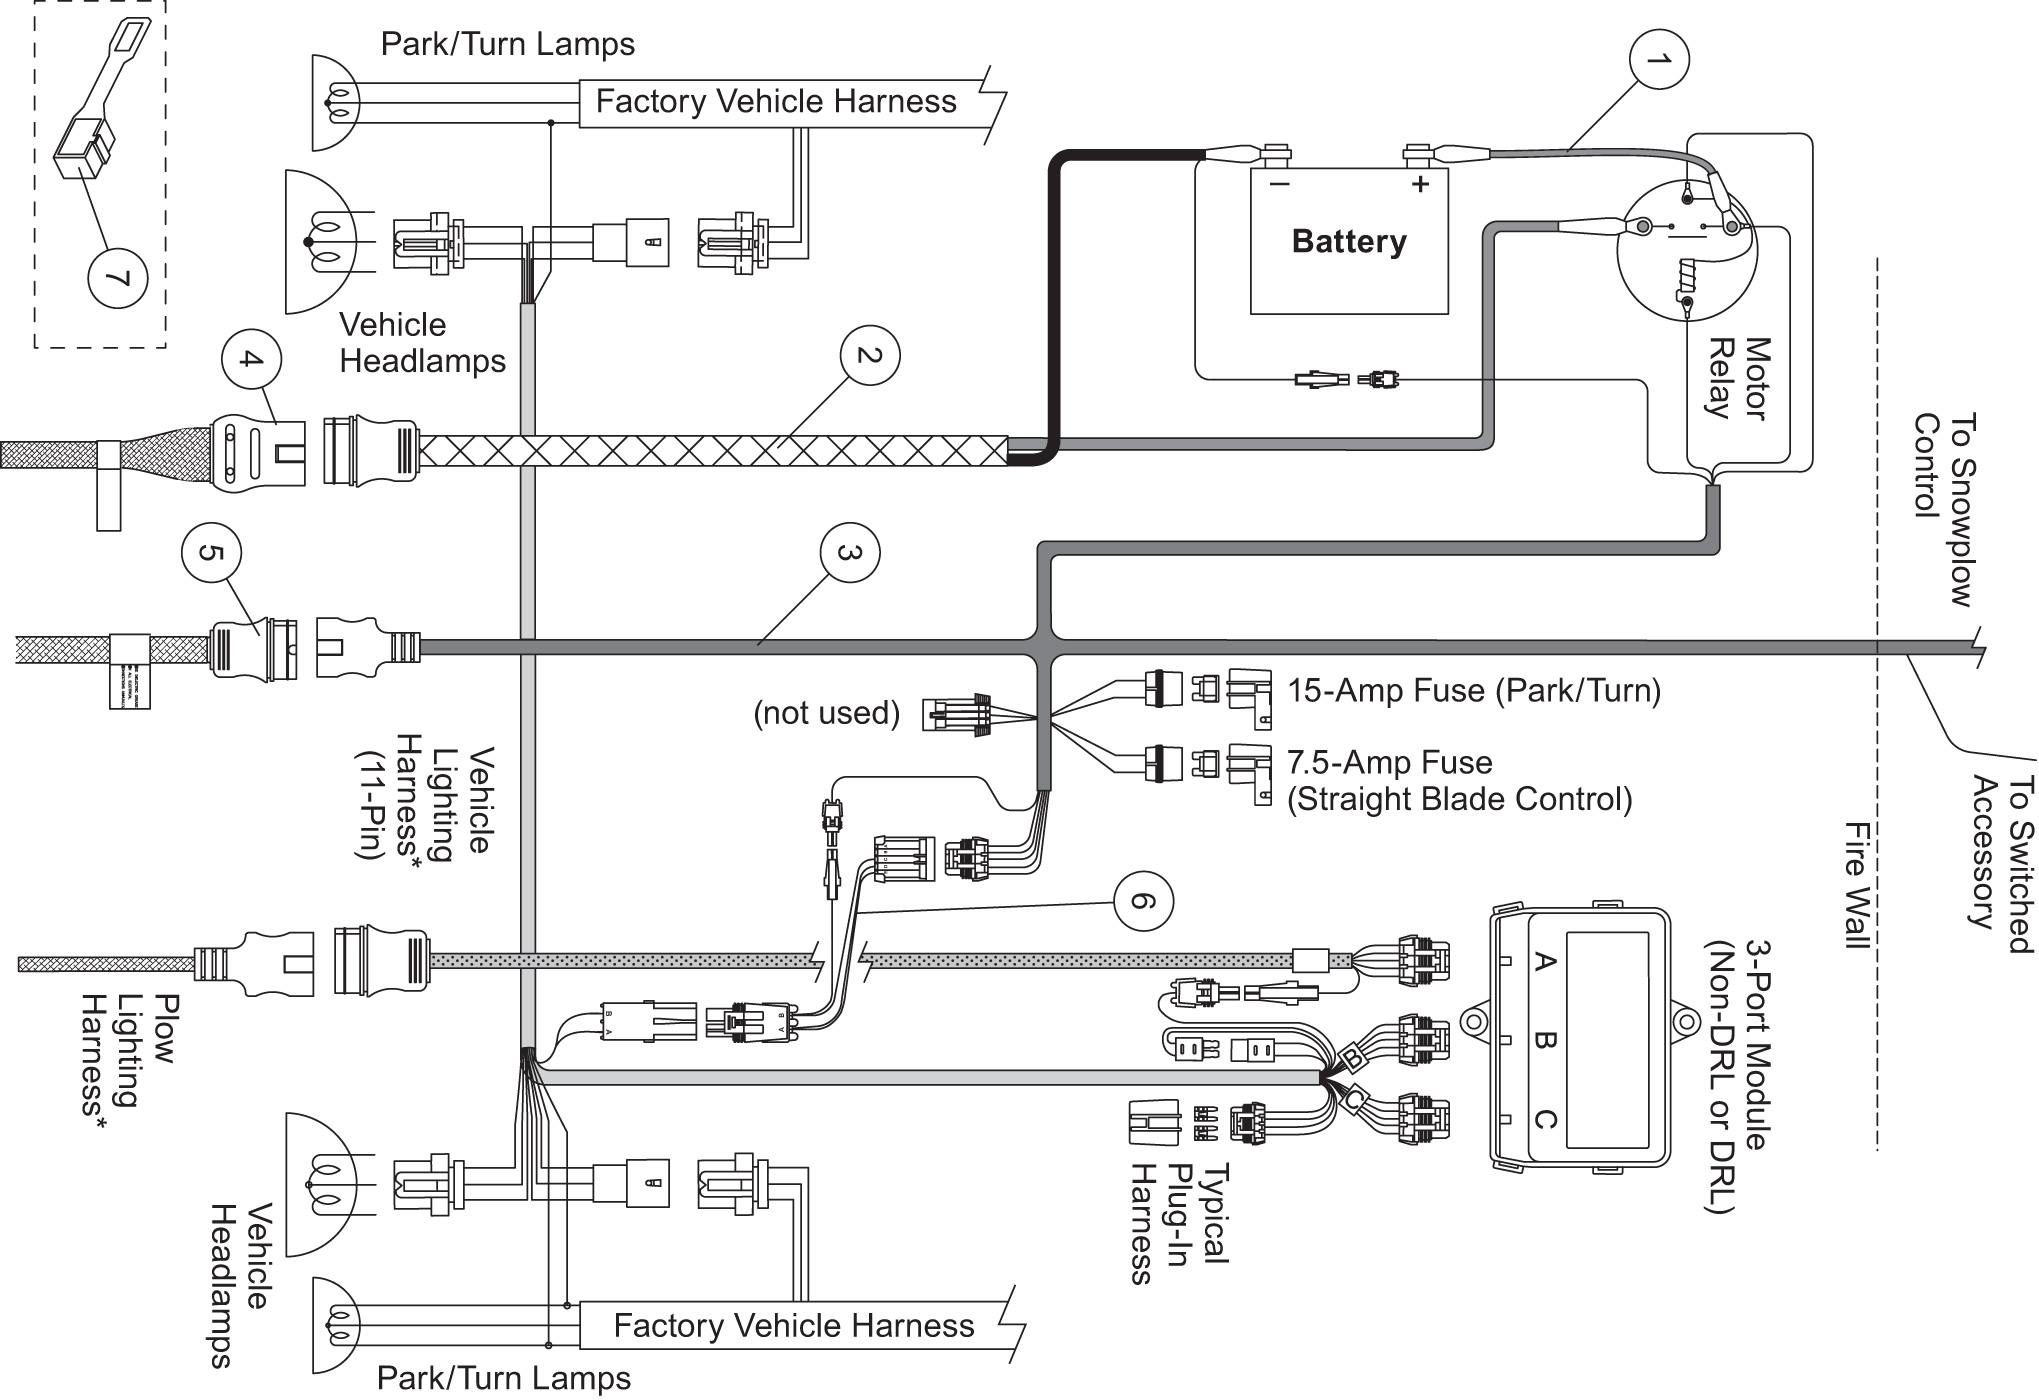 Western Plows Wiring Diagram - Schematic Wiring Diagram on